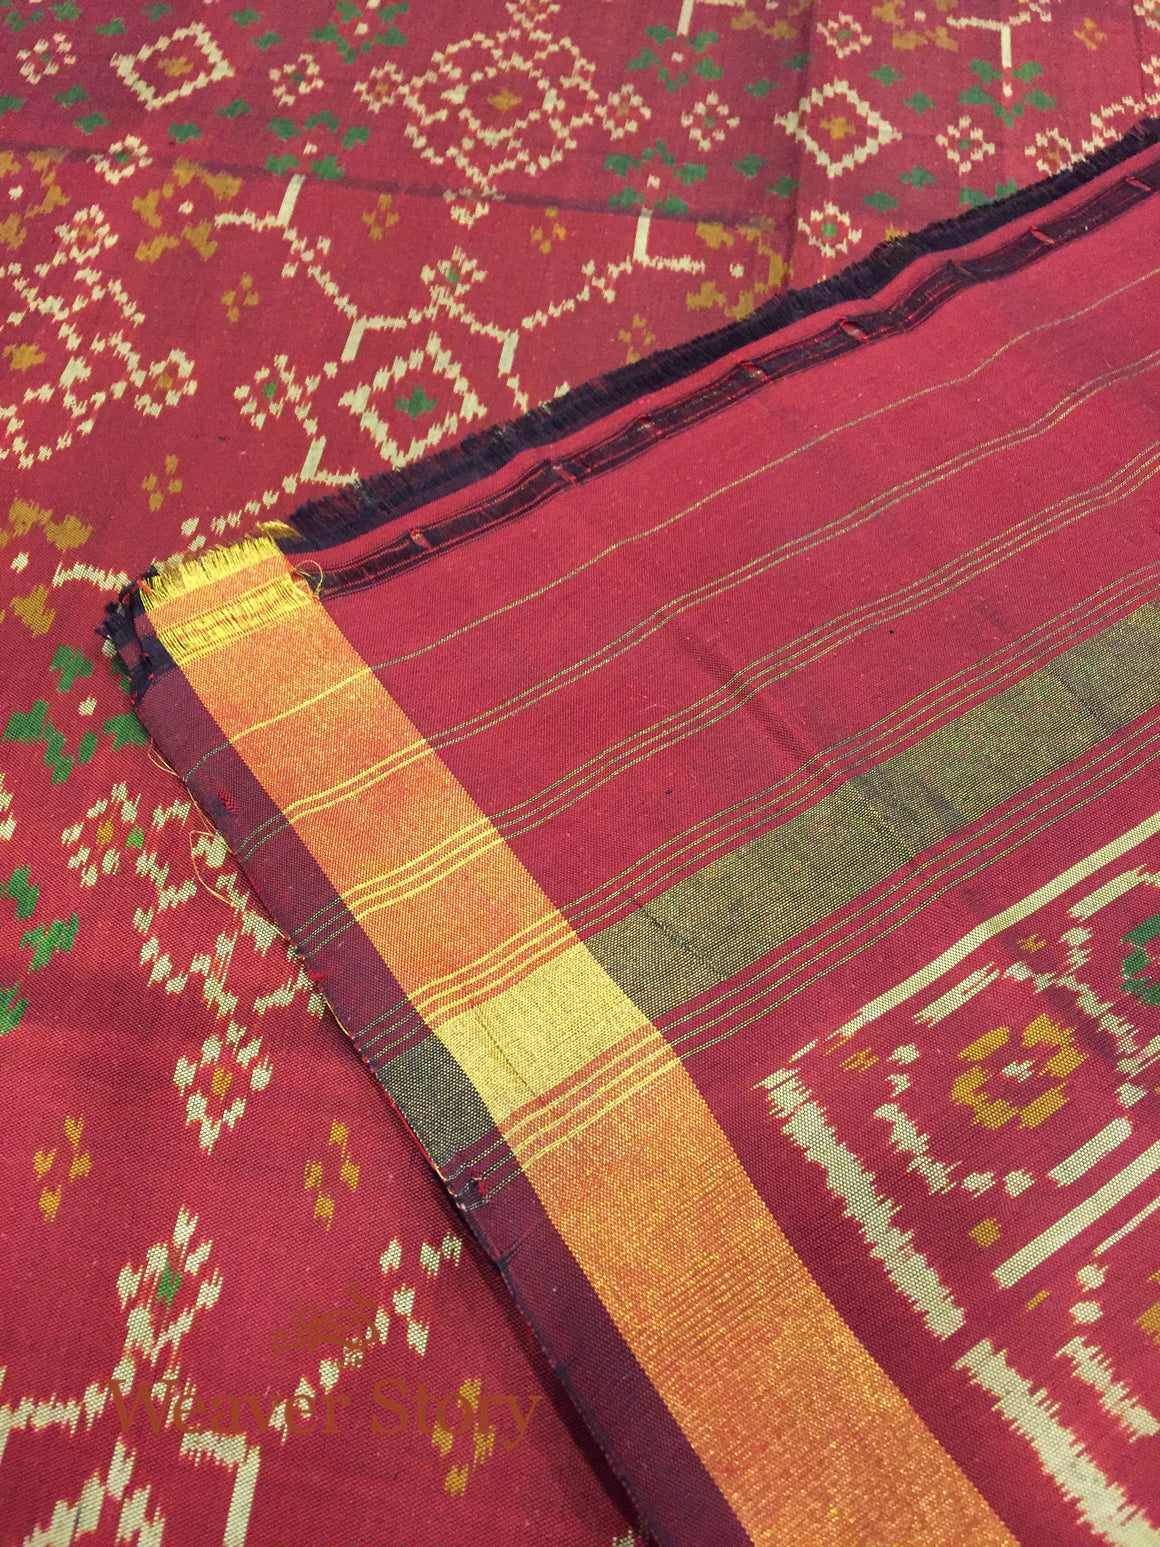 Handwoven Single Ikat Patola Dupatta in Maroon